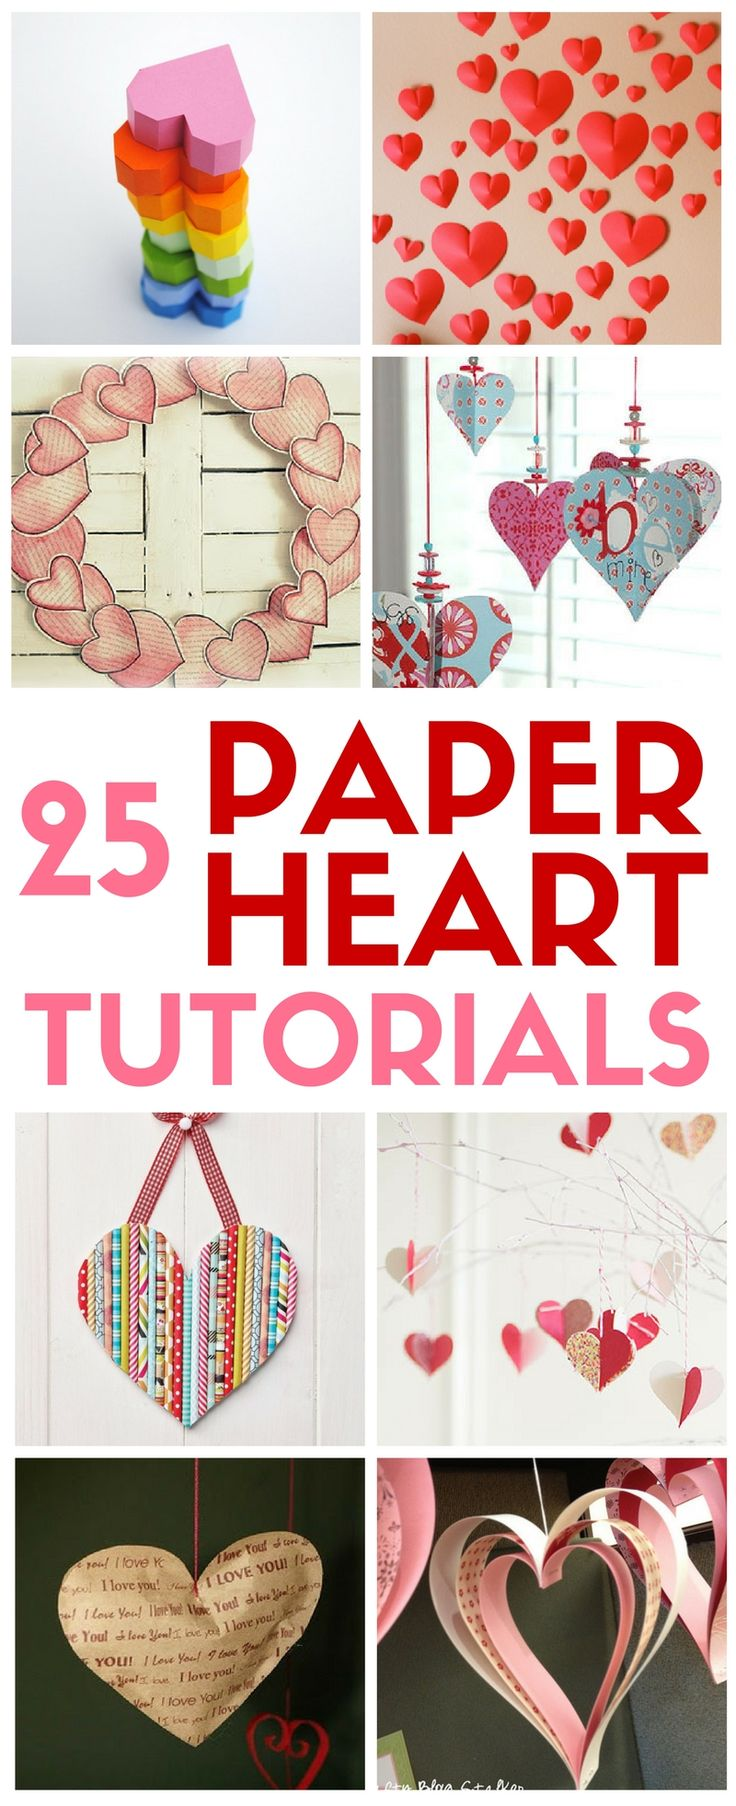 A collection of 25 paper heart projects for valentines day, weddings, or just because. A handmade heart is a simple DIY craft tutorial idea. Diy craft ideas